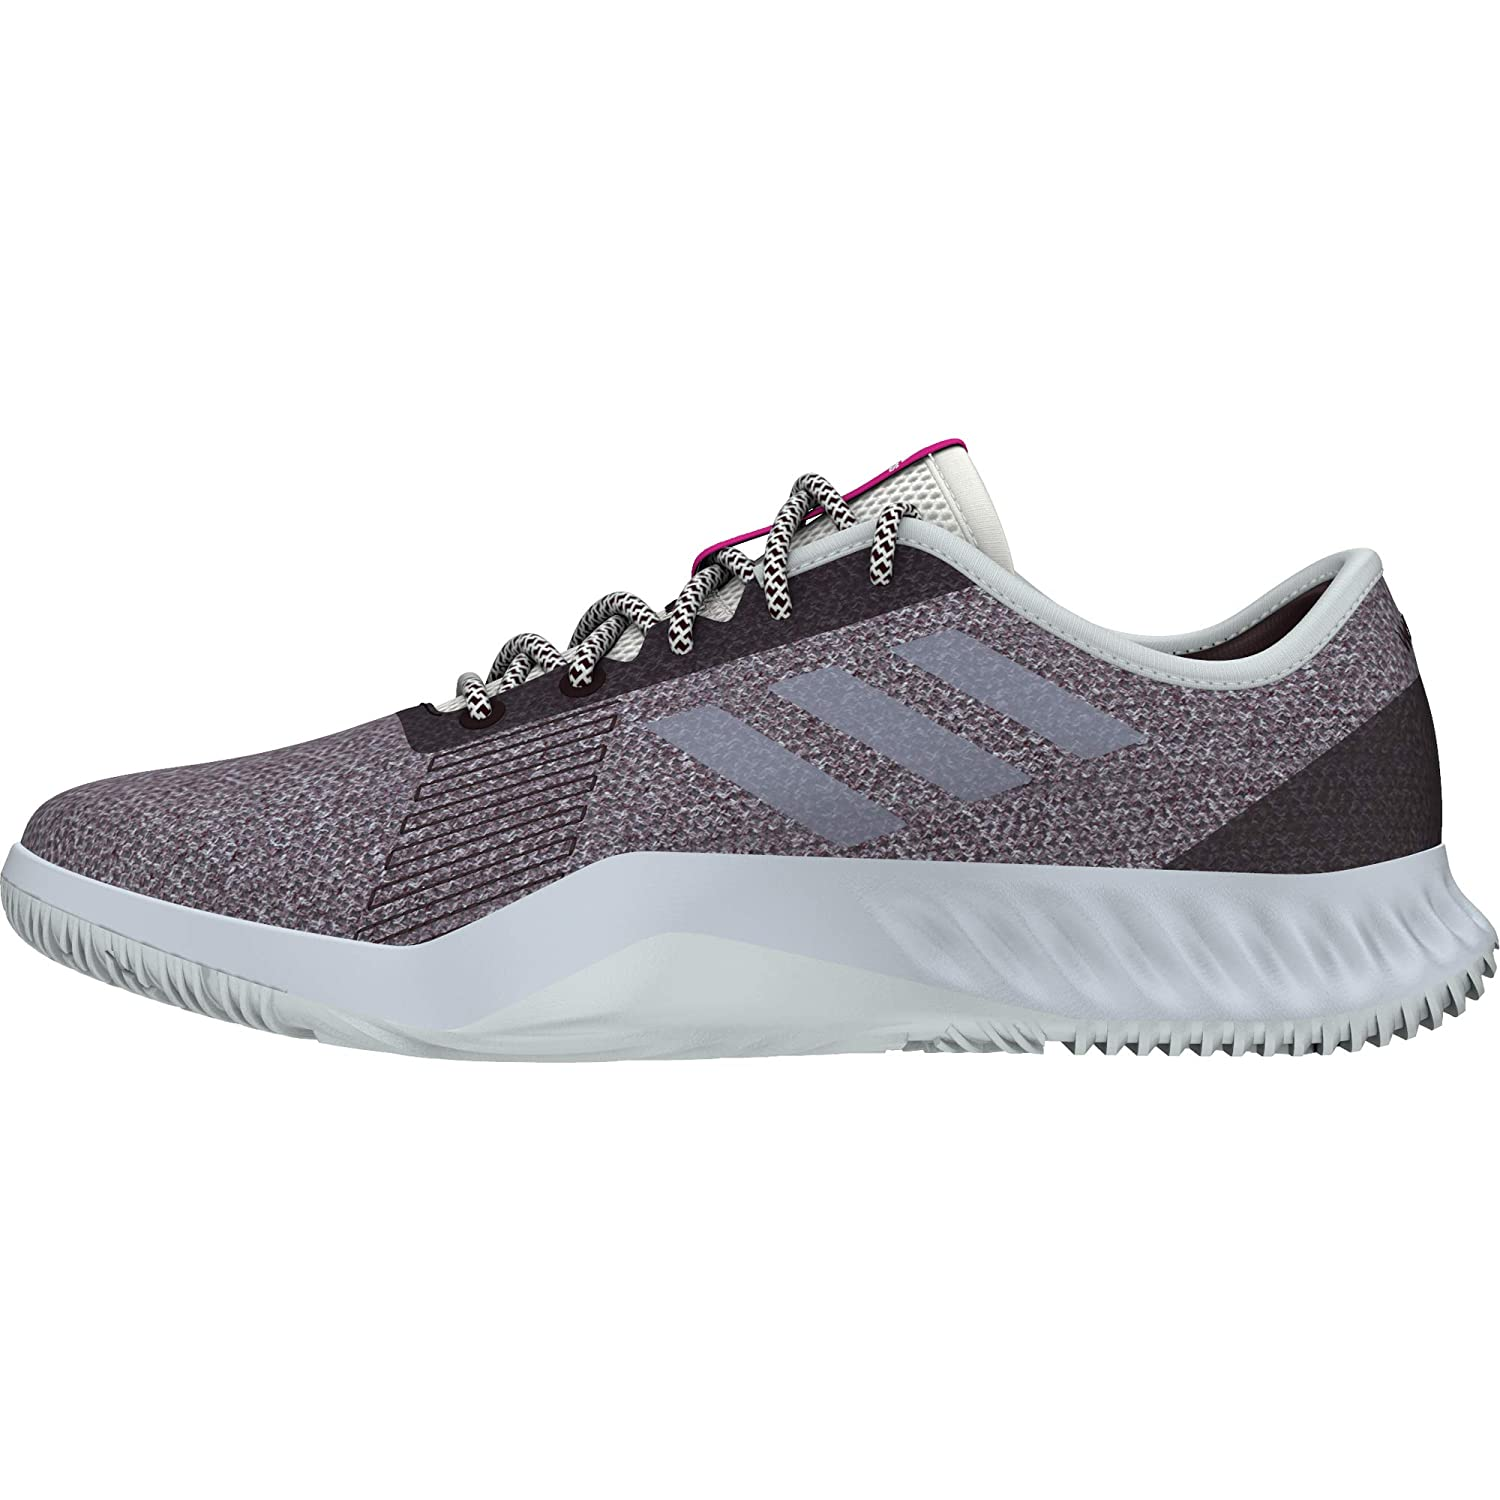 new products 949aa 01242 adidas Womens Crazytrain Lt Fitness Shoes Amazon.co.uk Shoes